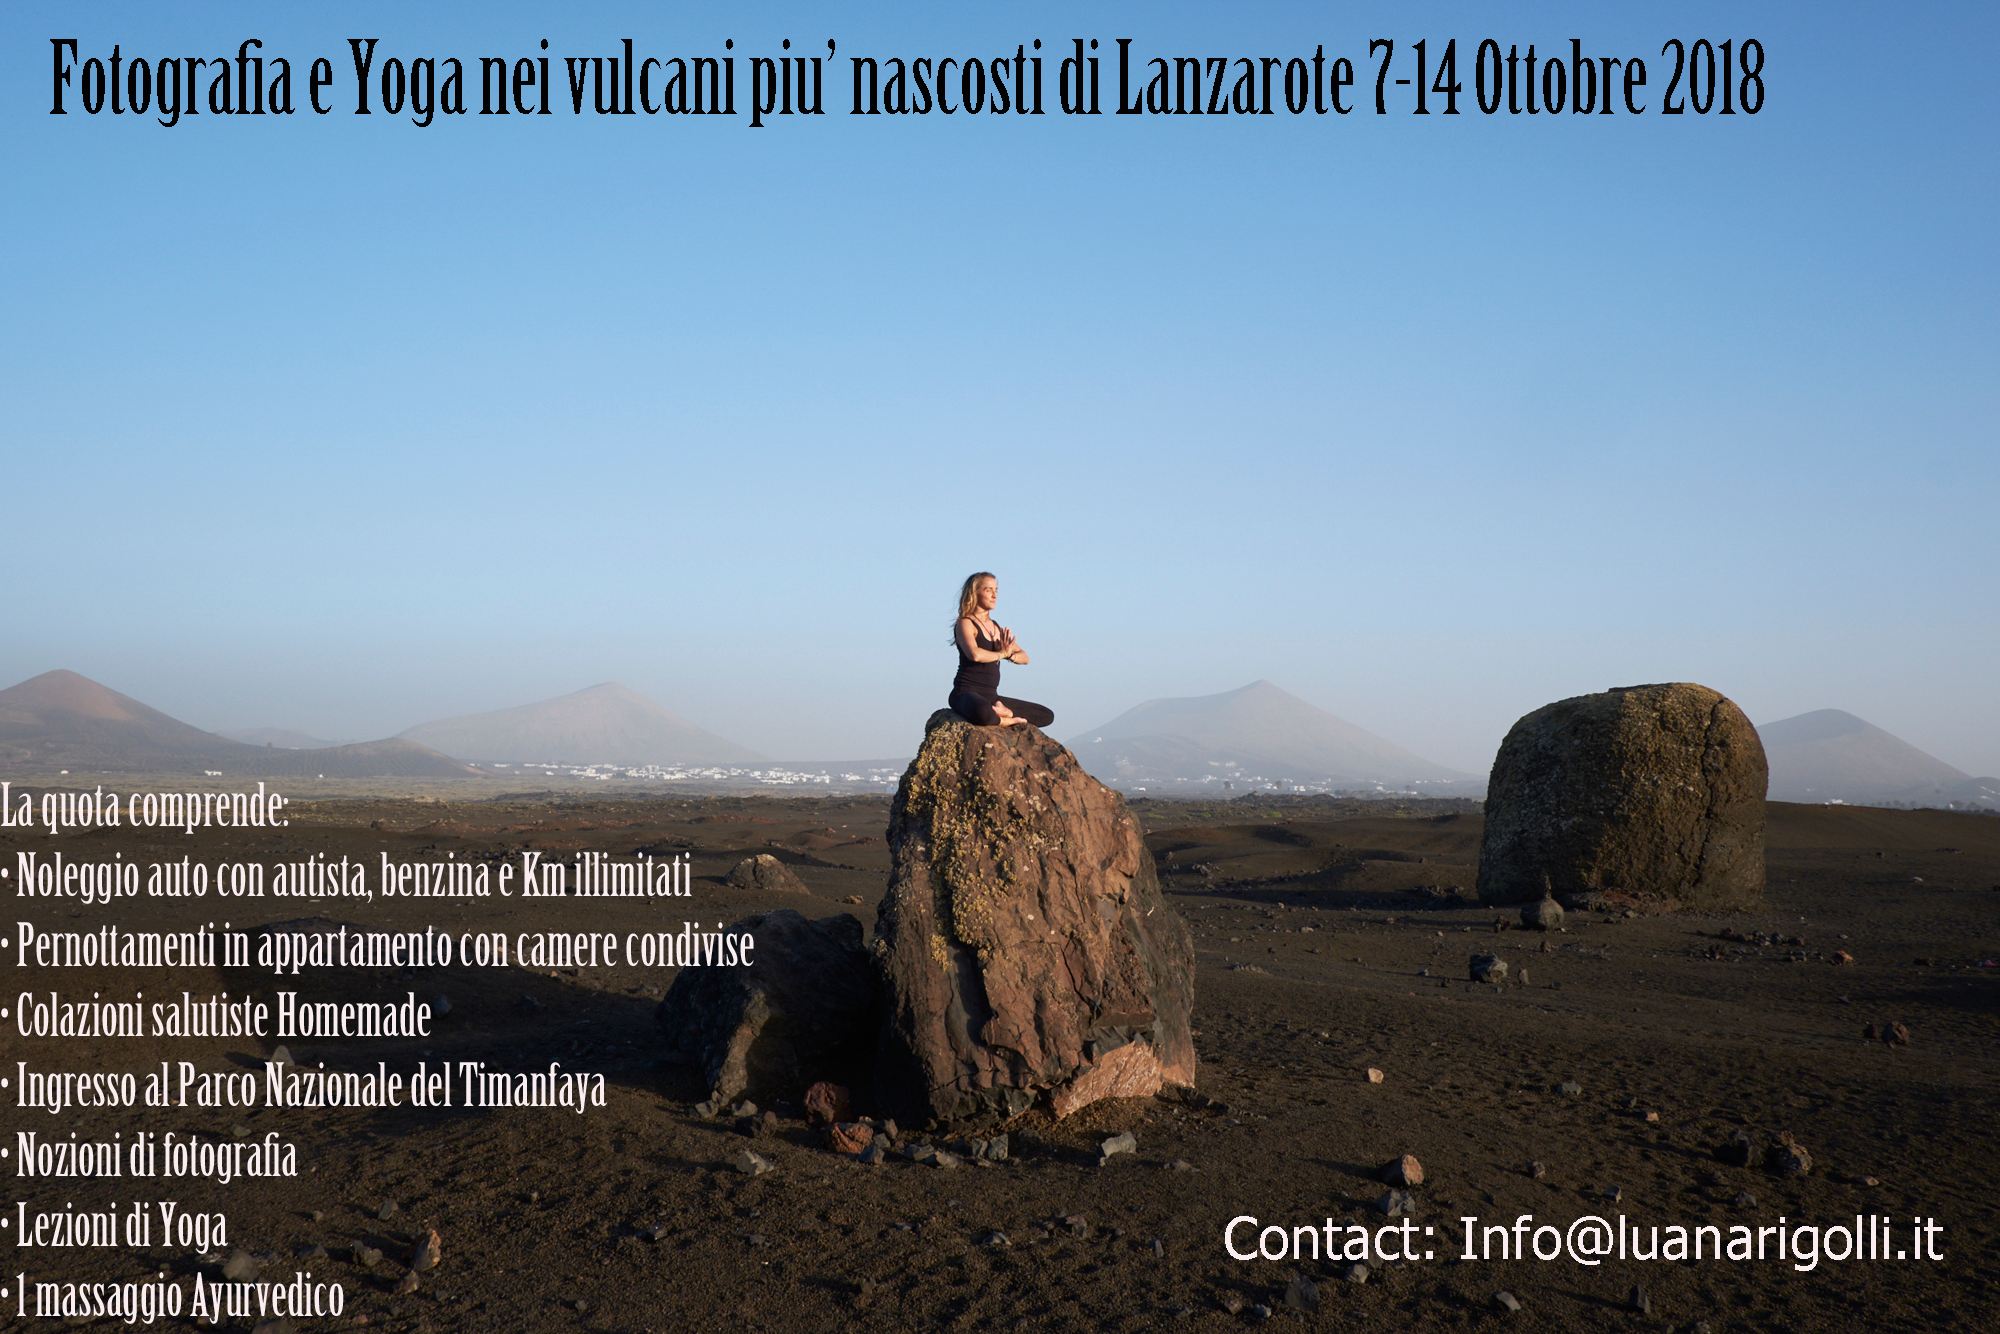 Photo and Yoga experience in Lanzarote, 7-14 Ottobre 2018